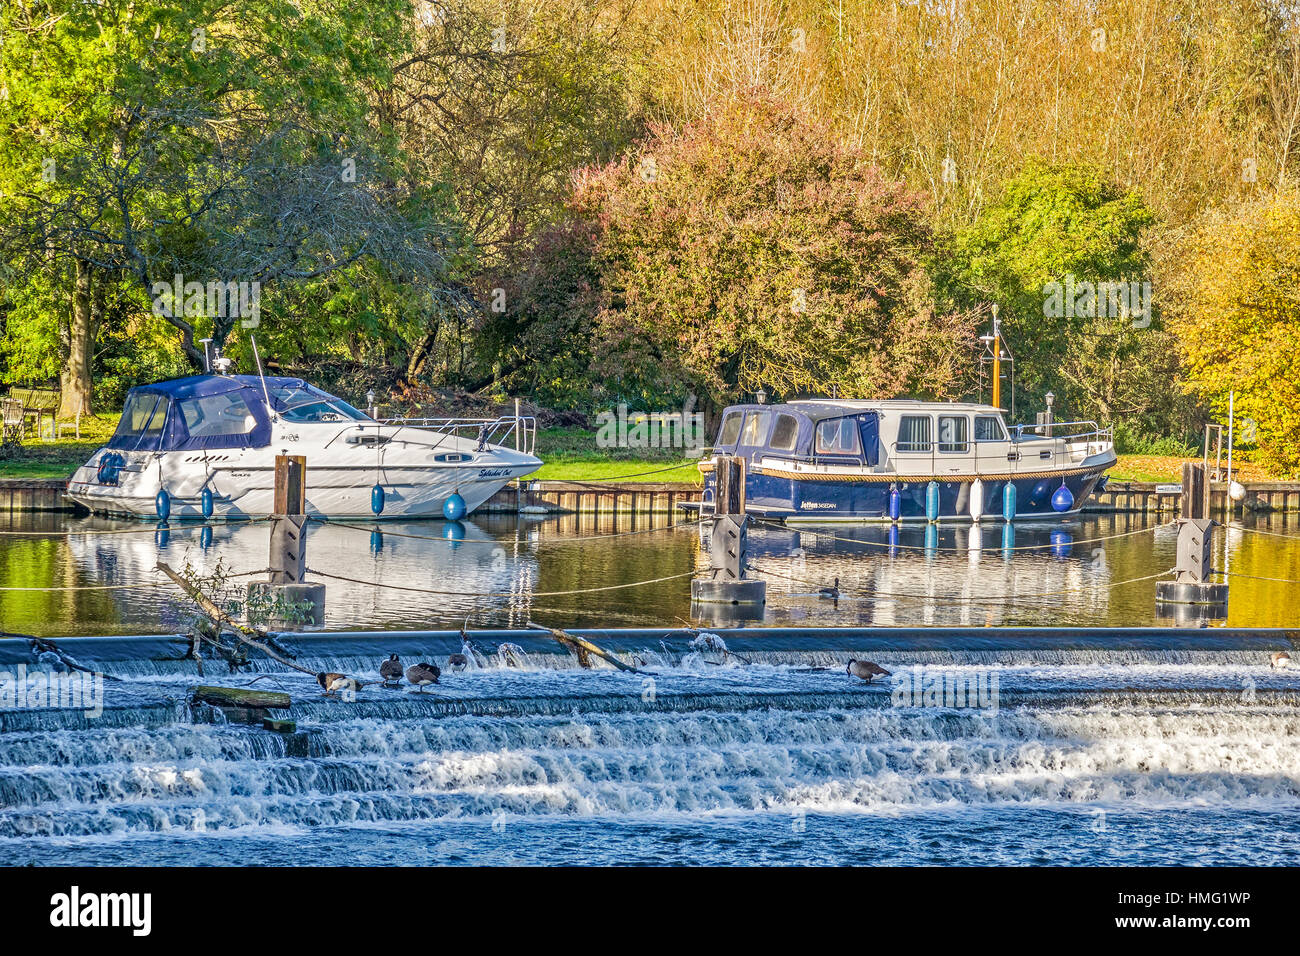 The Weir At Goring On Thames Oxfordshire UK - Stock Image